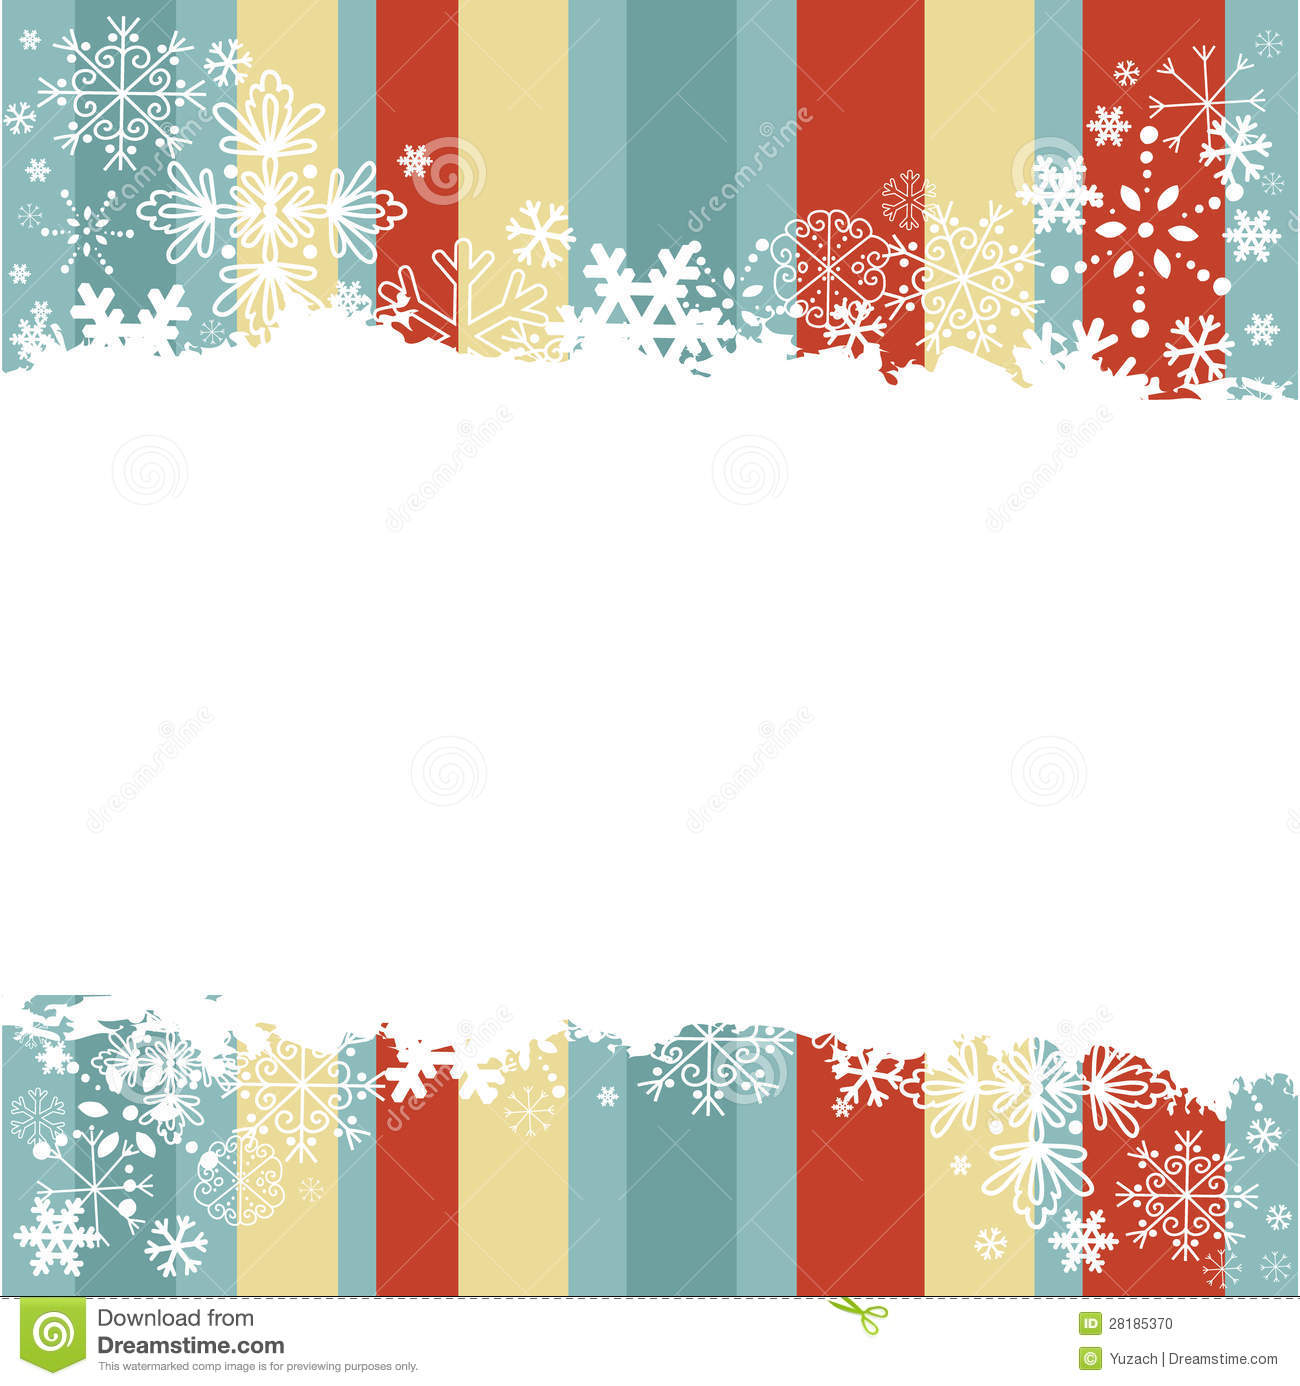 Winter postcard template snow text snowflake birds icons free.